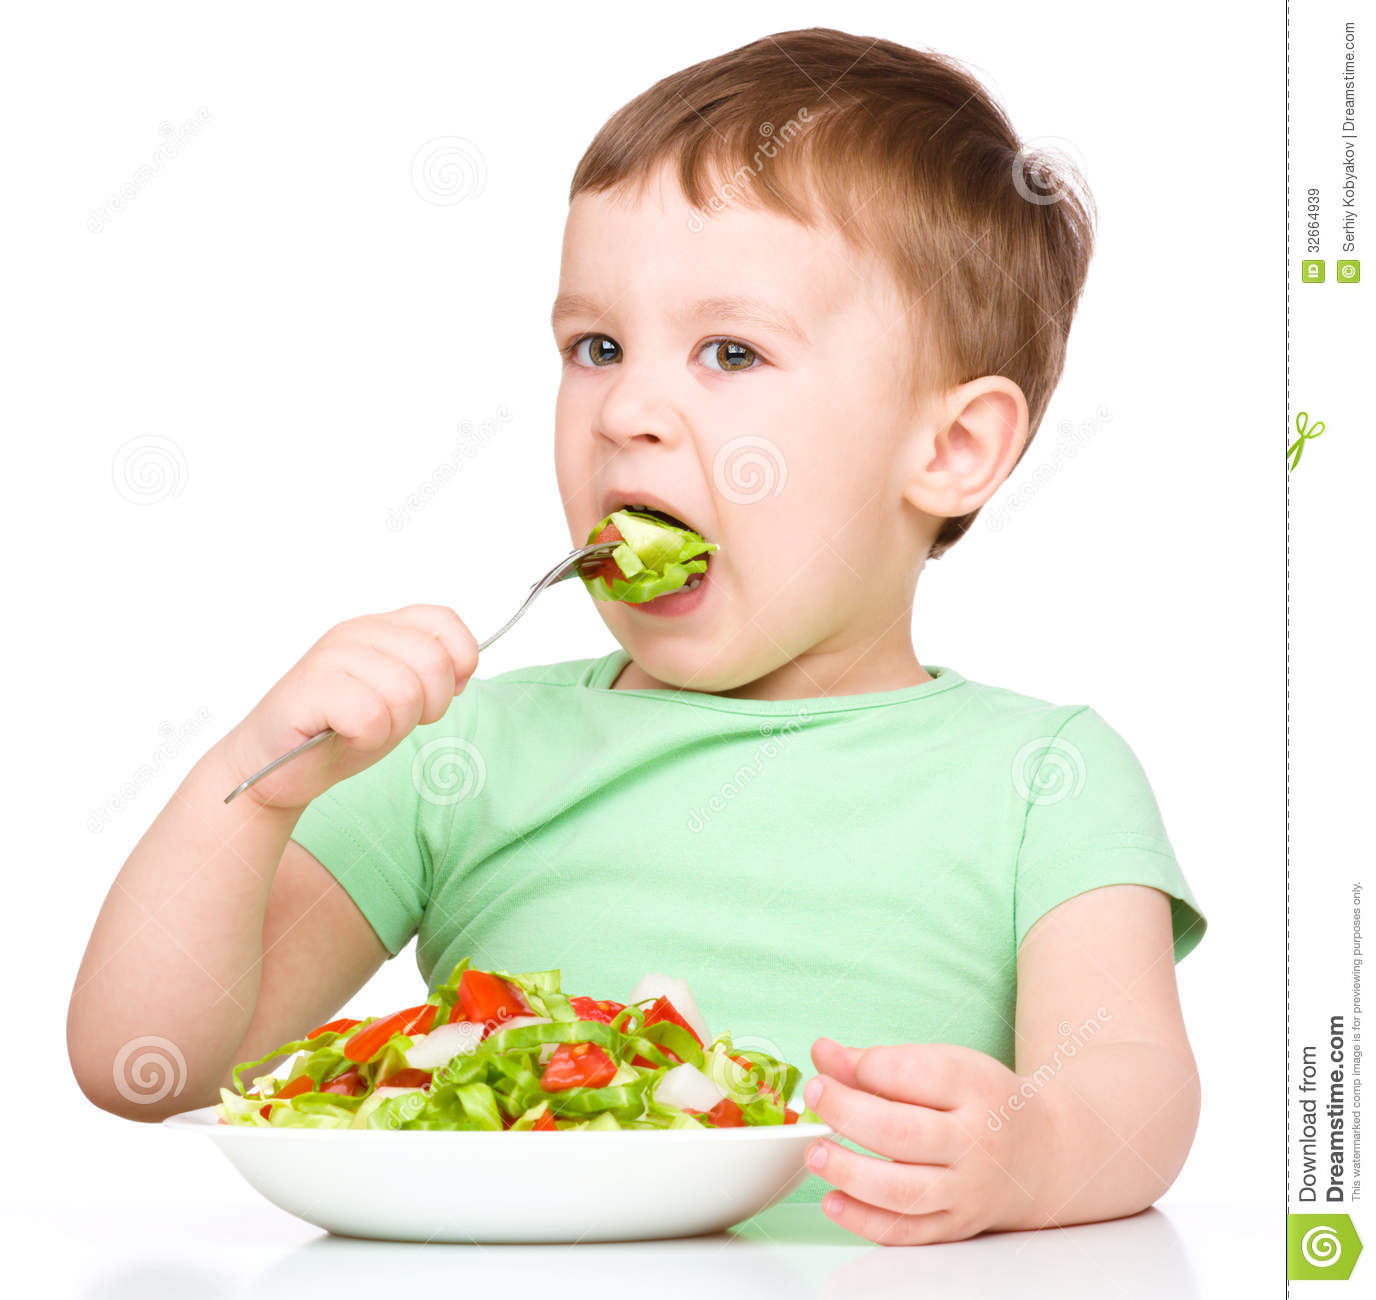 Images Of Baby Eating Food